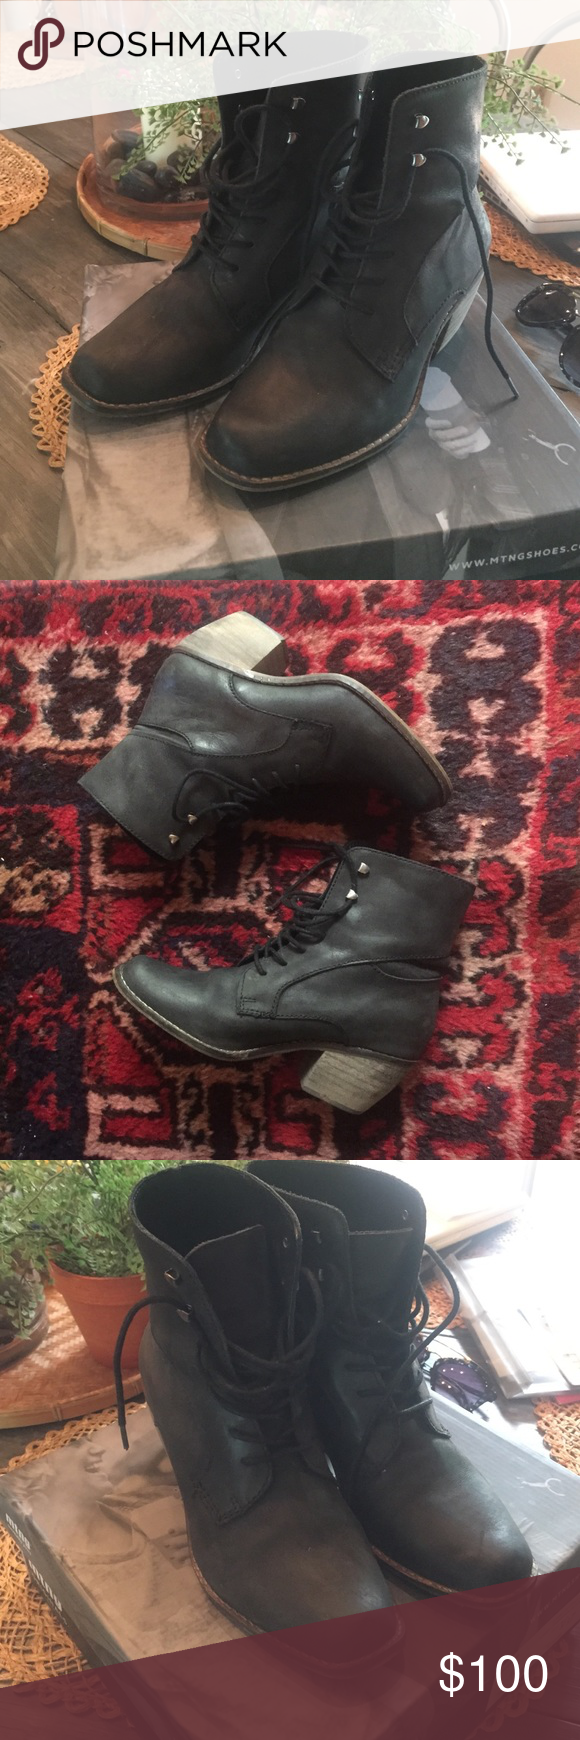 Lace up ankle boots  Only worn twice! Ordered these last year but sadly are a little too small when worn with socks...(fits more like a 6.5-7) comes with box! MTNG Shoes